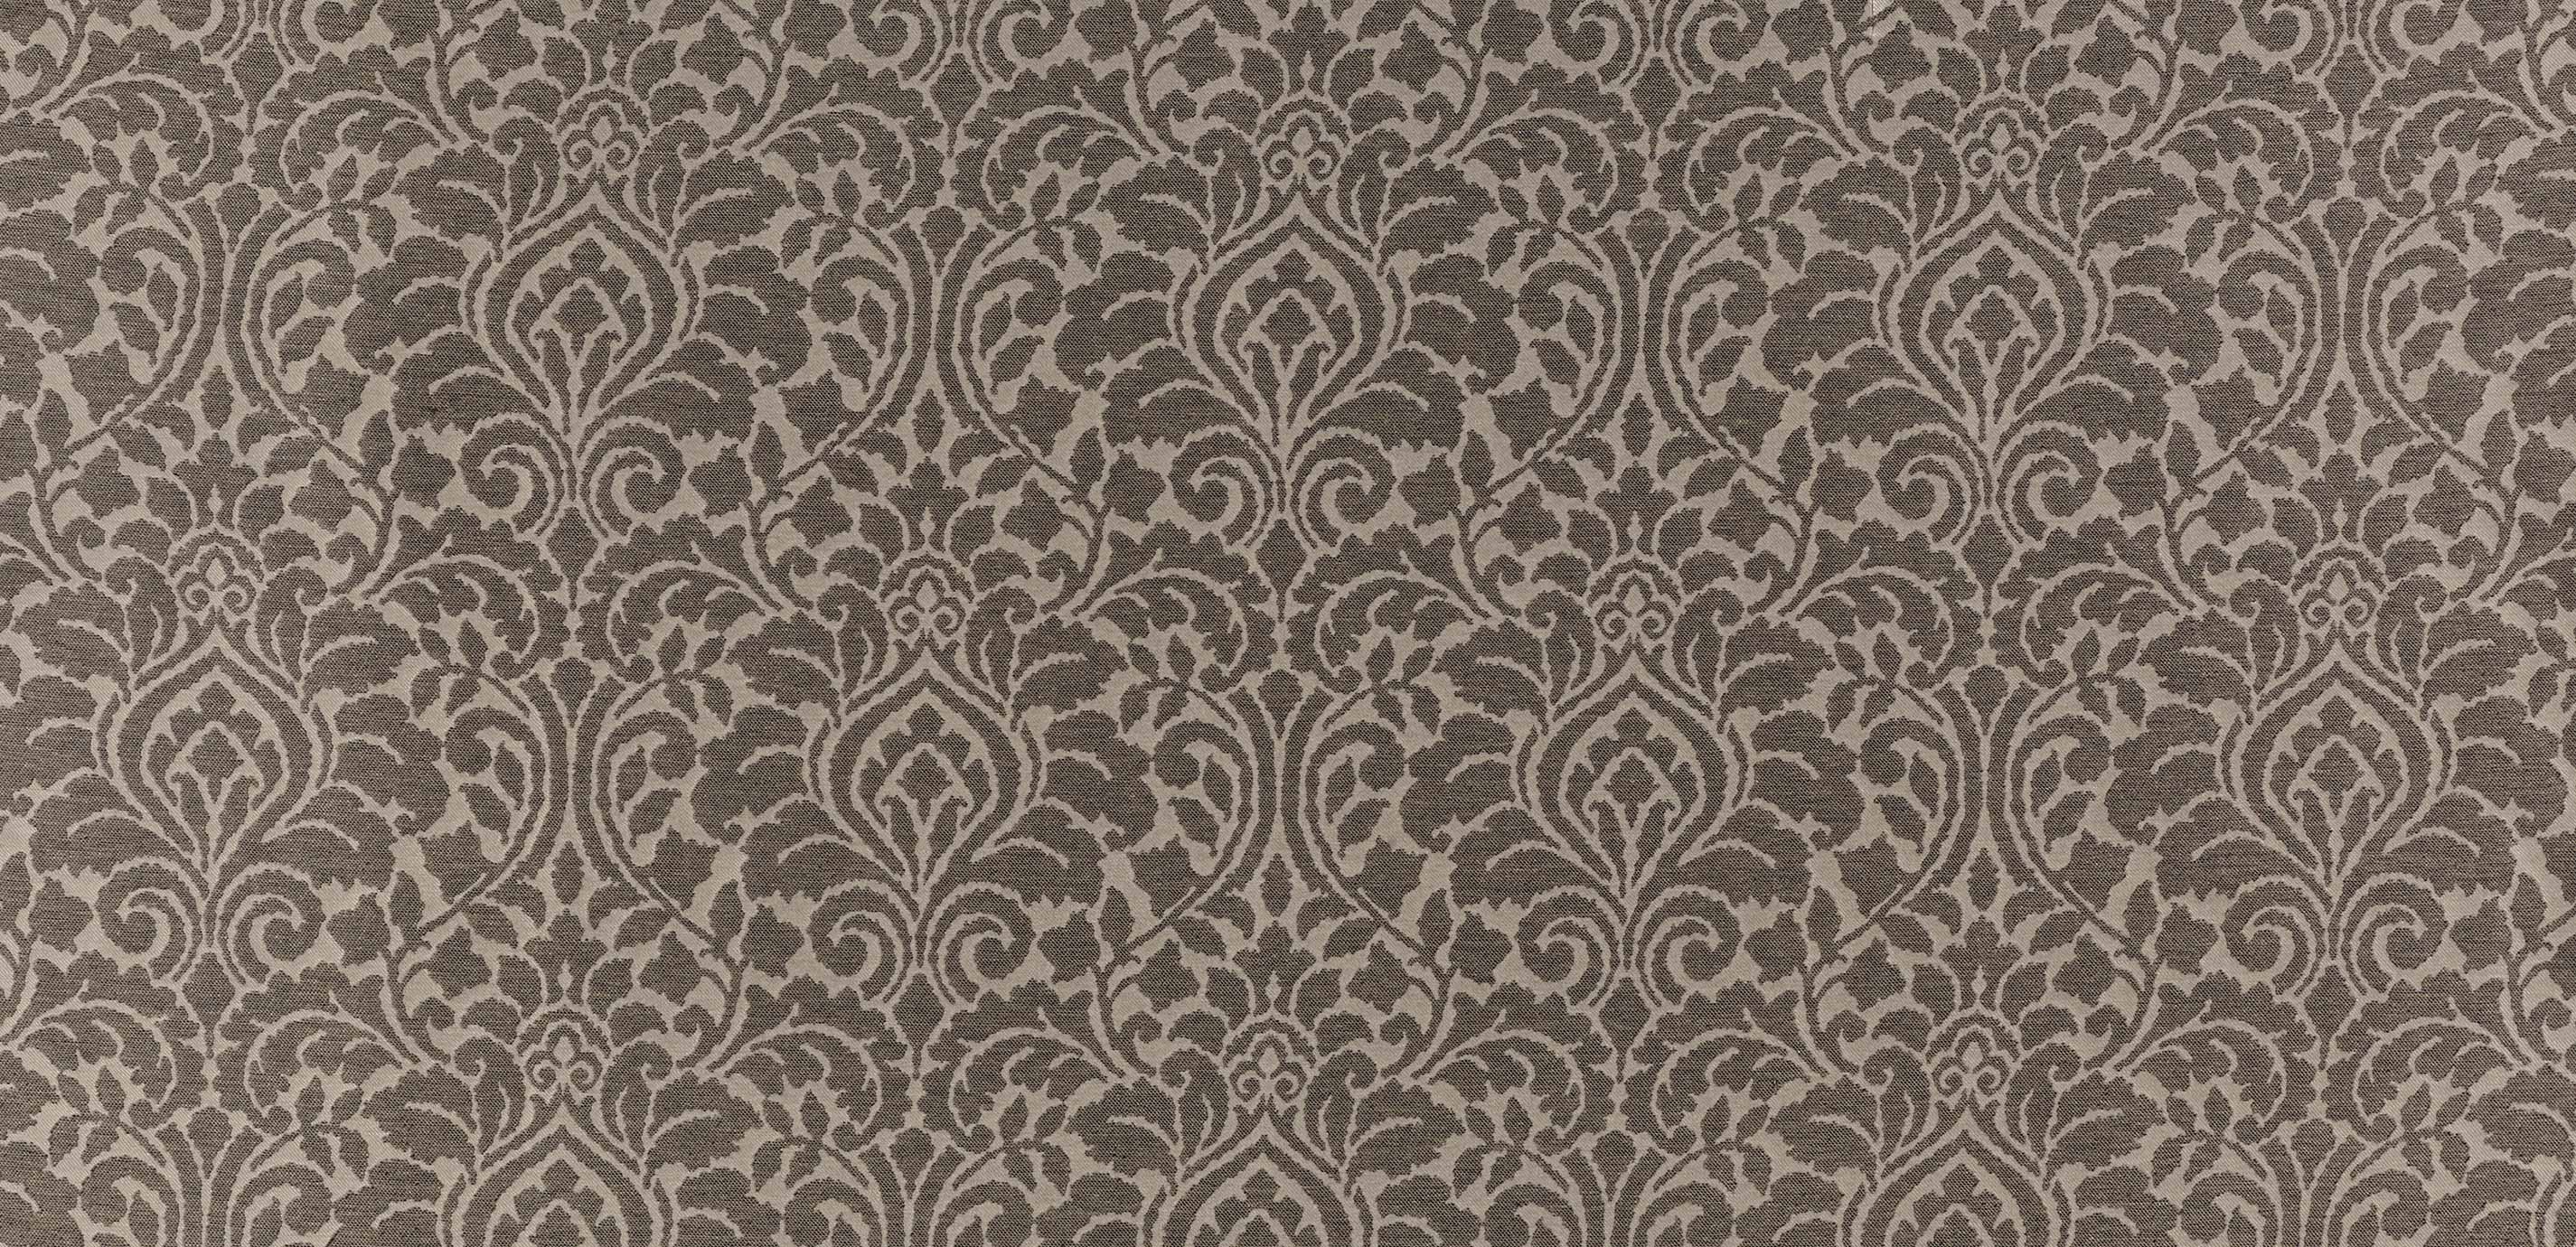 Noble sable fabric ethan allen for Fabric sites